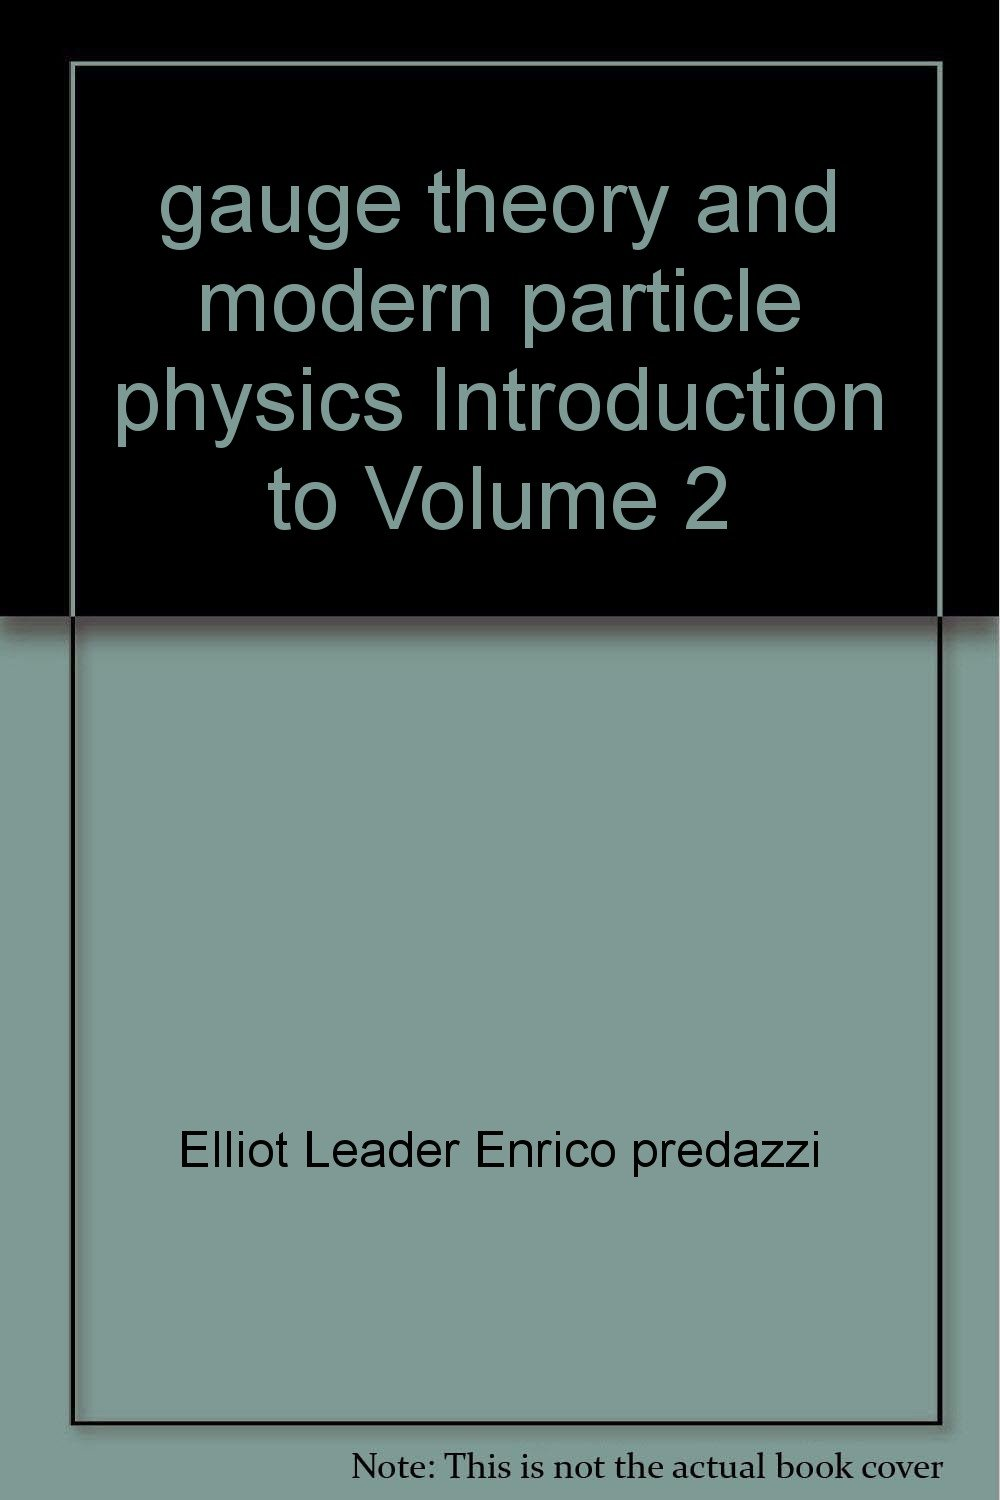 gauge theory and modern particle physics Introduction to Volume 2 pdf